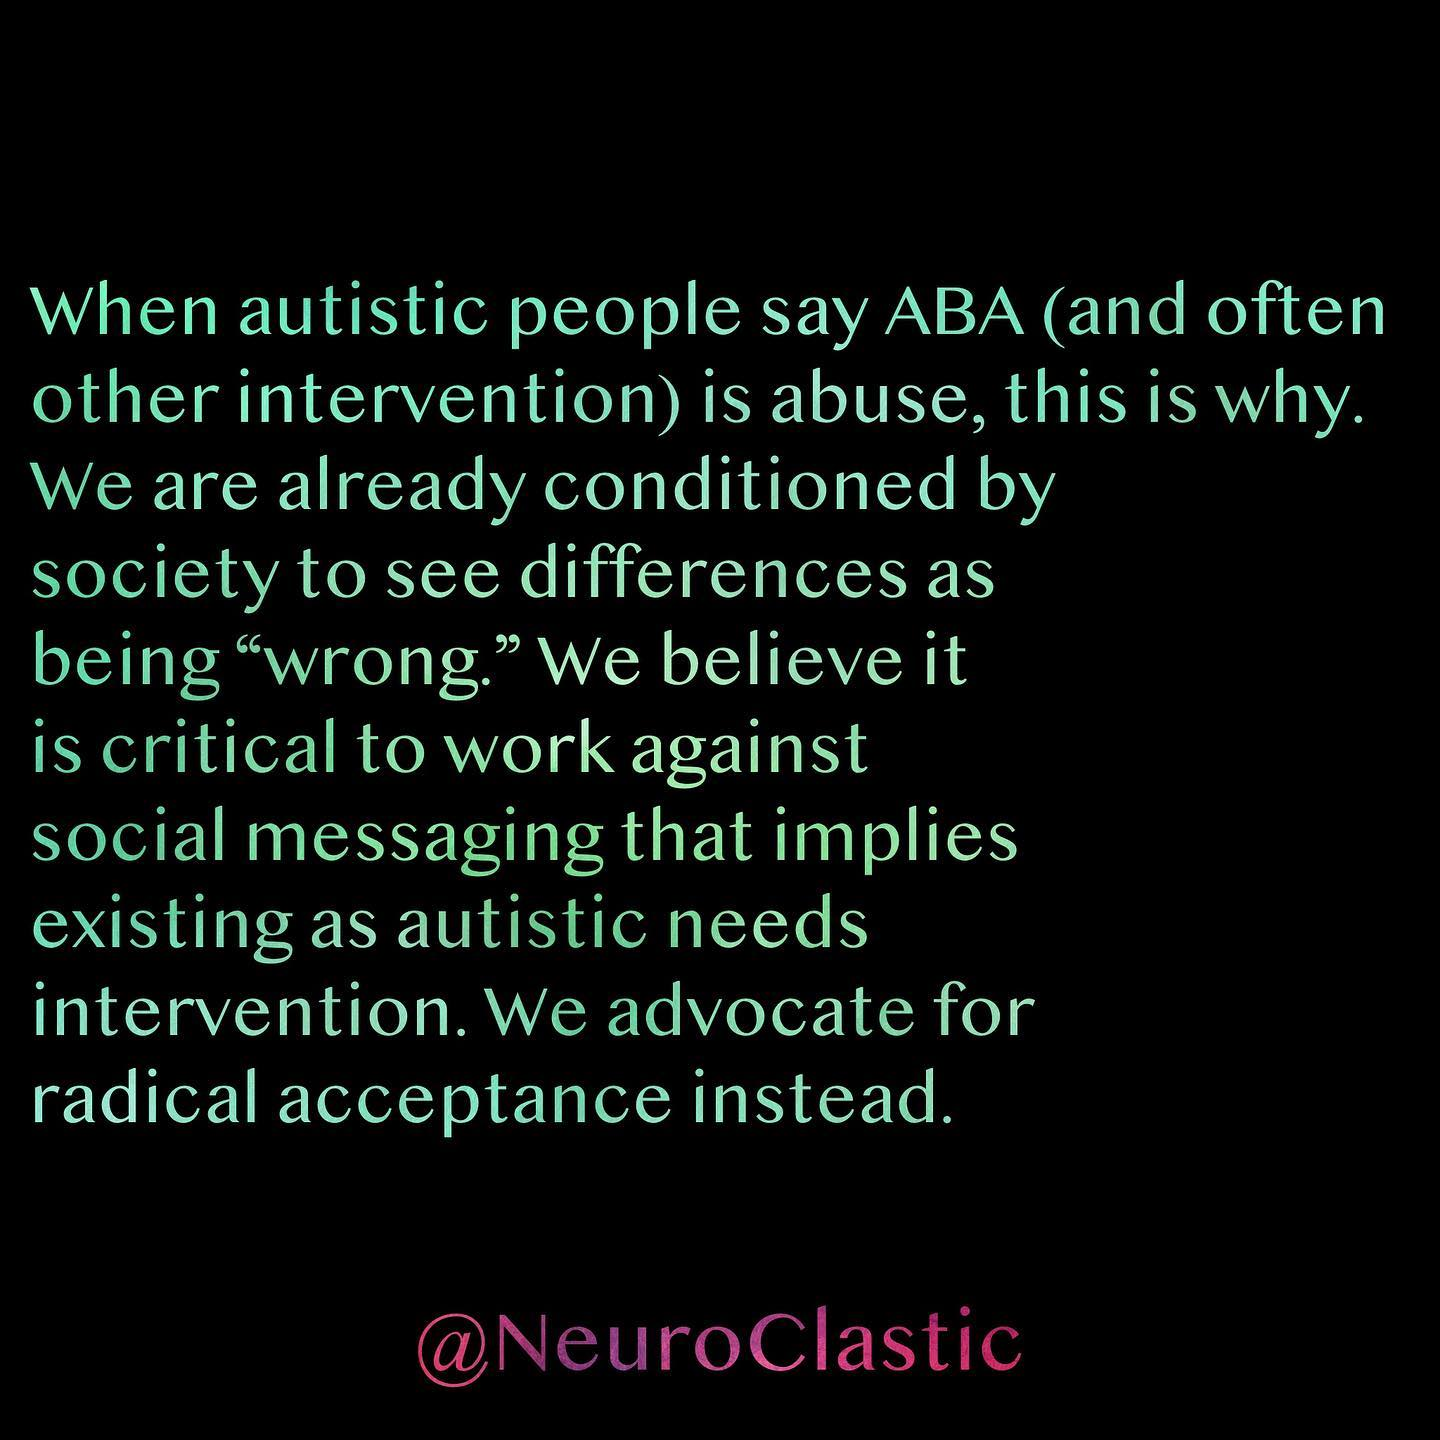 """When autistic people say ABA (and often other intervention) is abuse, this is why. We are already conditioned by society to see differences as being """"wrong."""" We believe it is critical to work against social messaging that implies existing as autistic needs intervention. We advocate for radical acceptance instead. @NeuroClastic"""